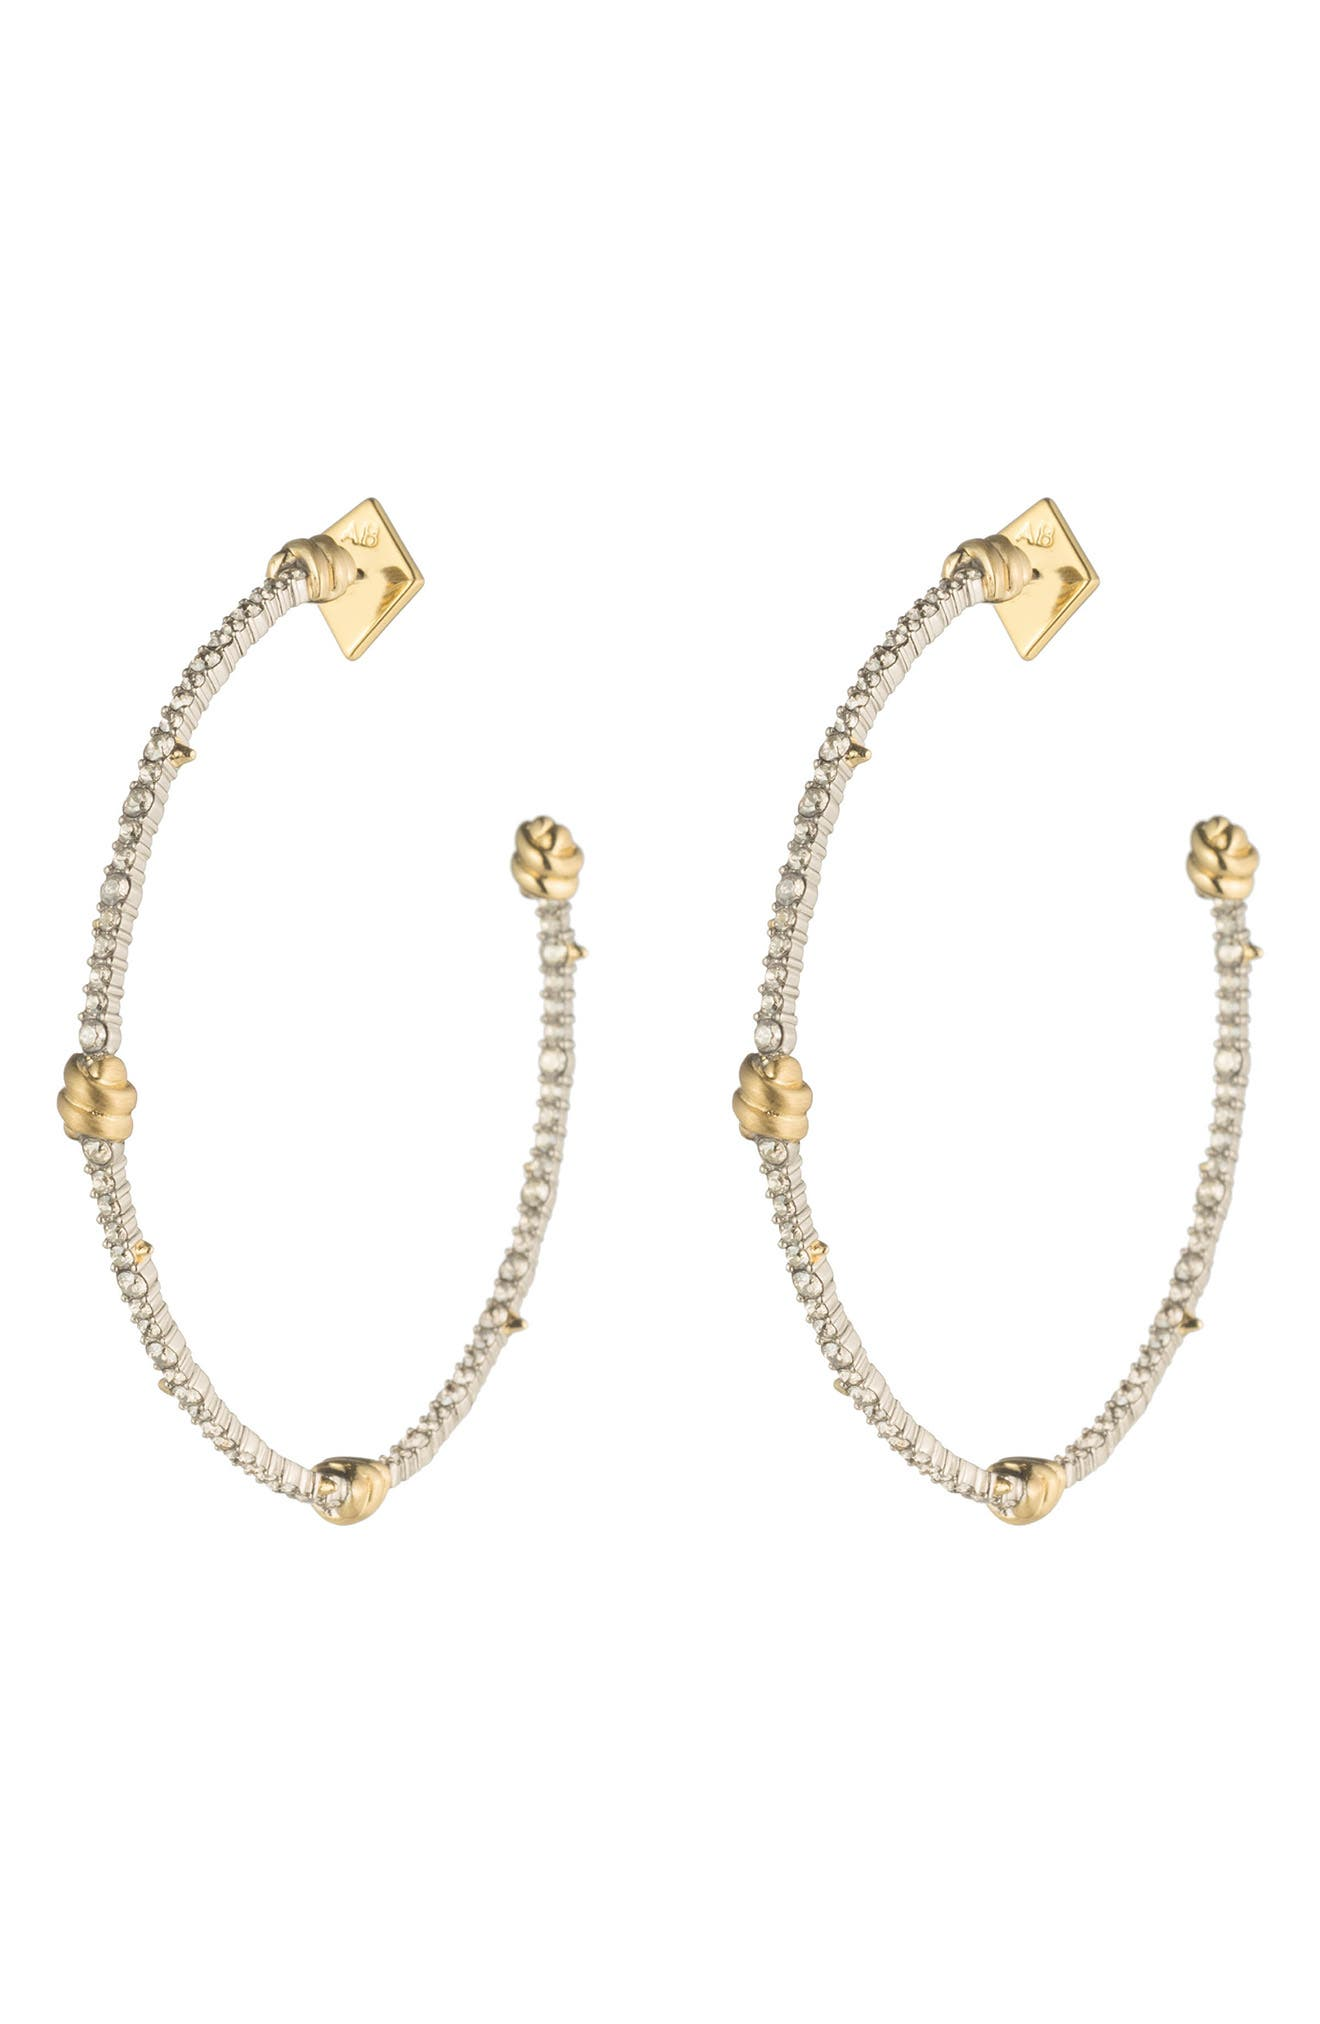 Crystal Pavé Knotted Hoop Earrings,                             Main thumbnail 1, color,                             710